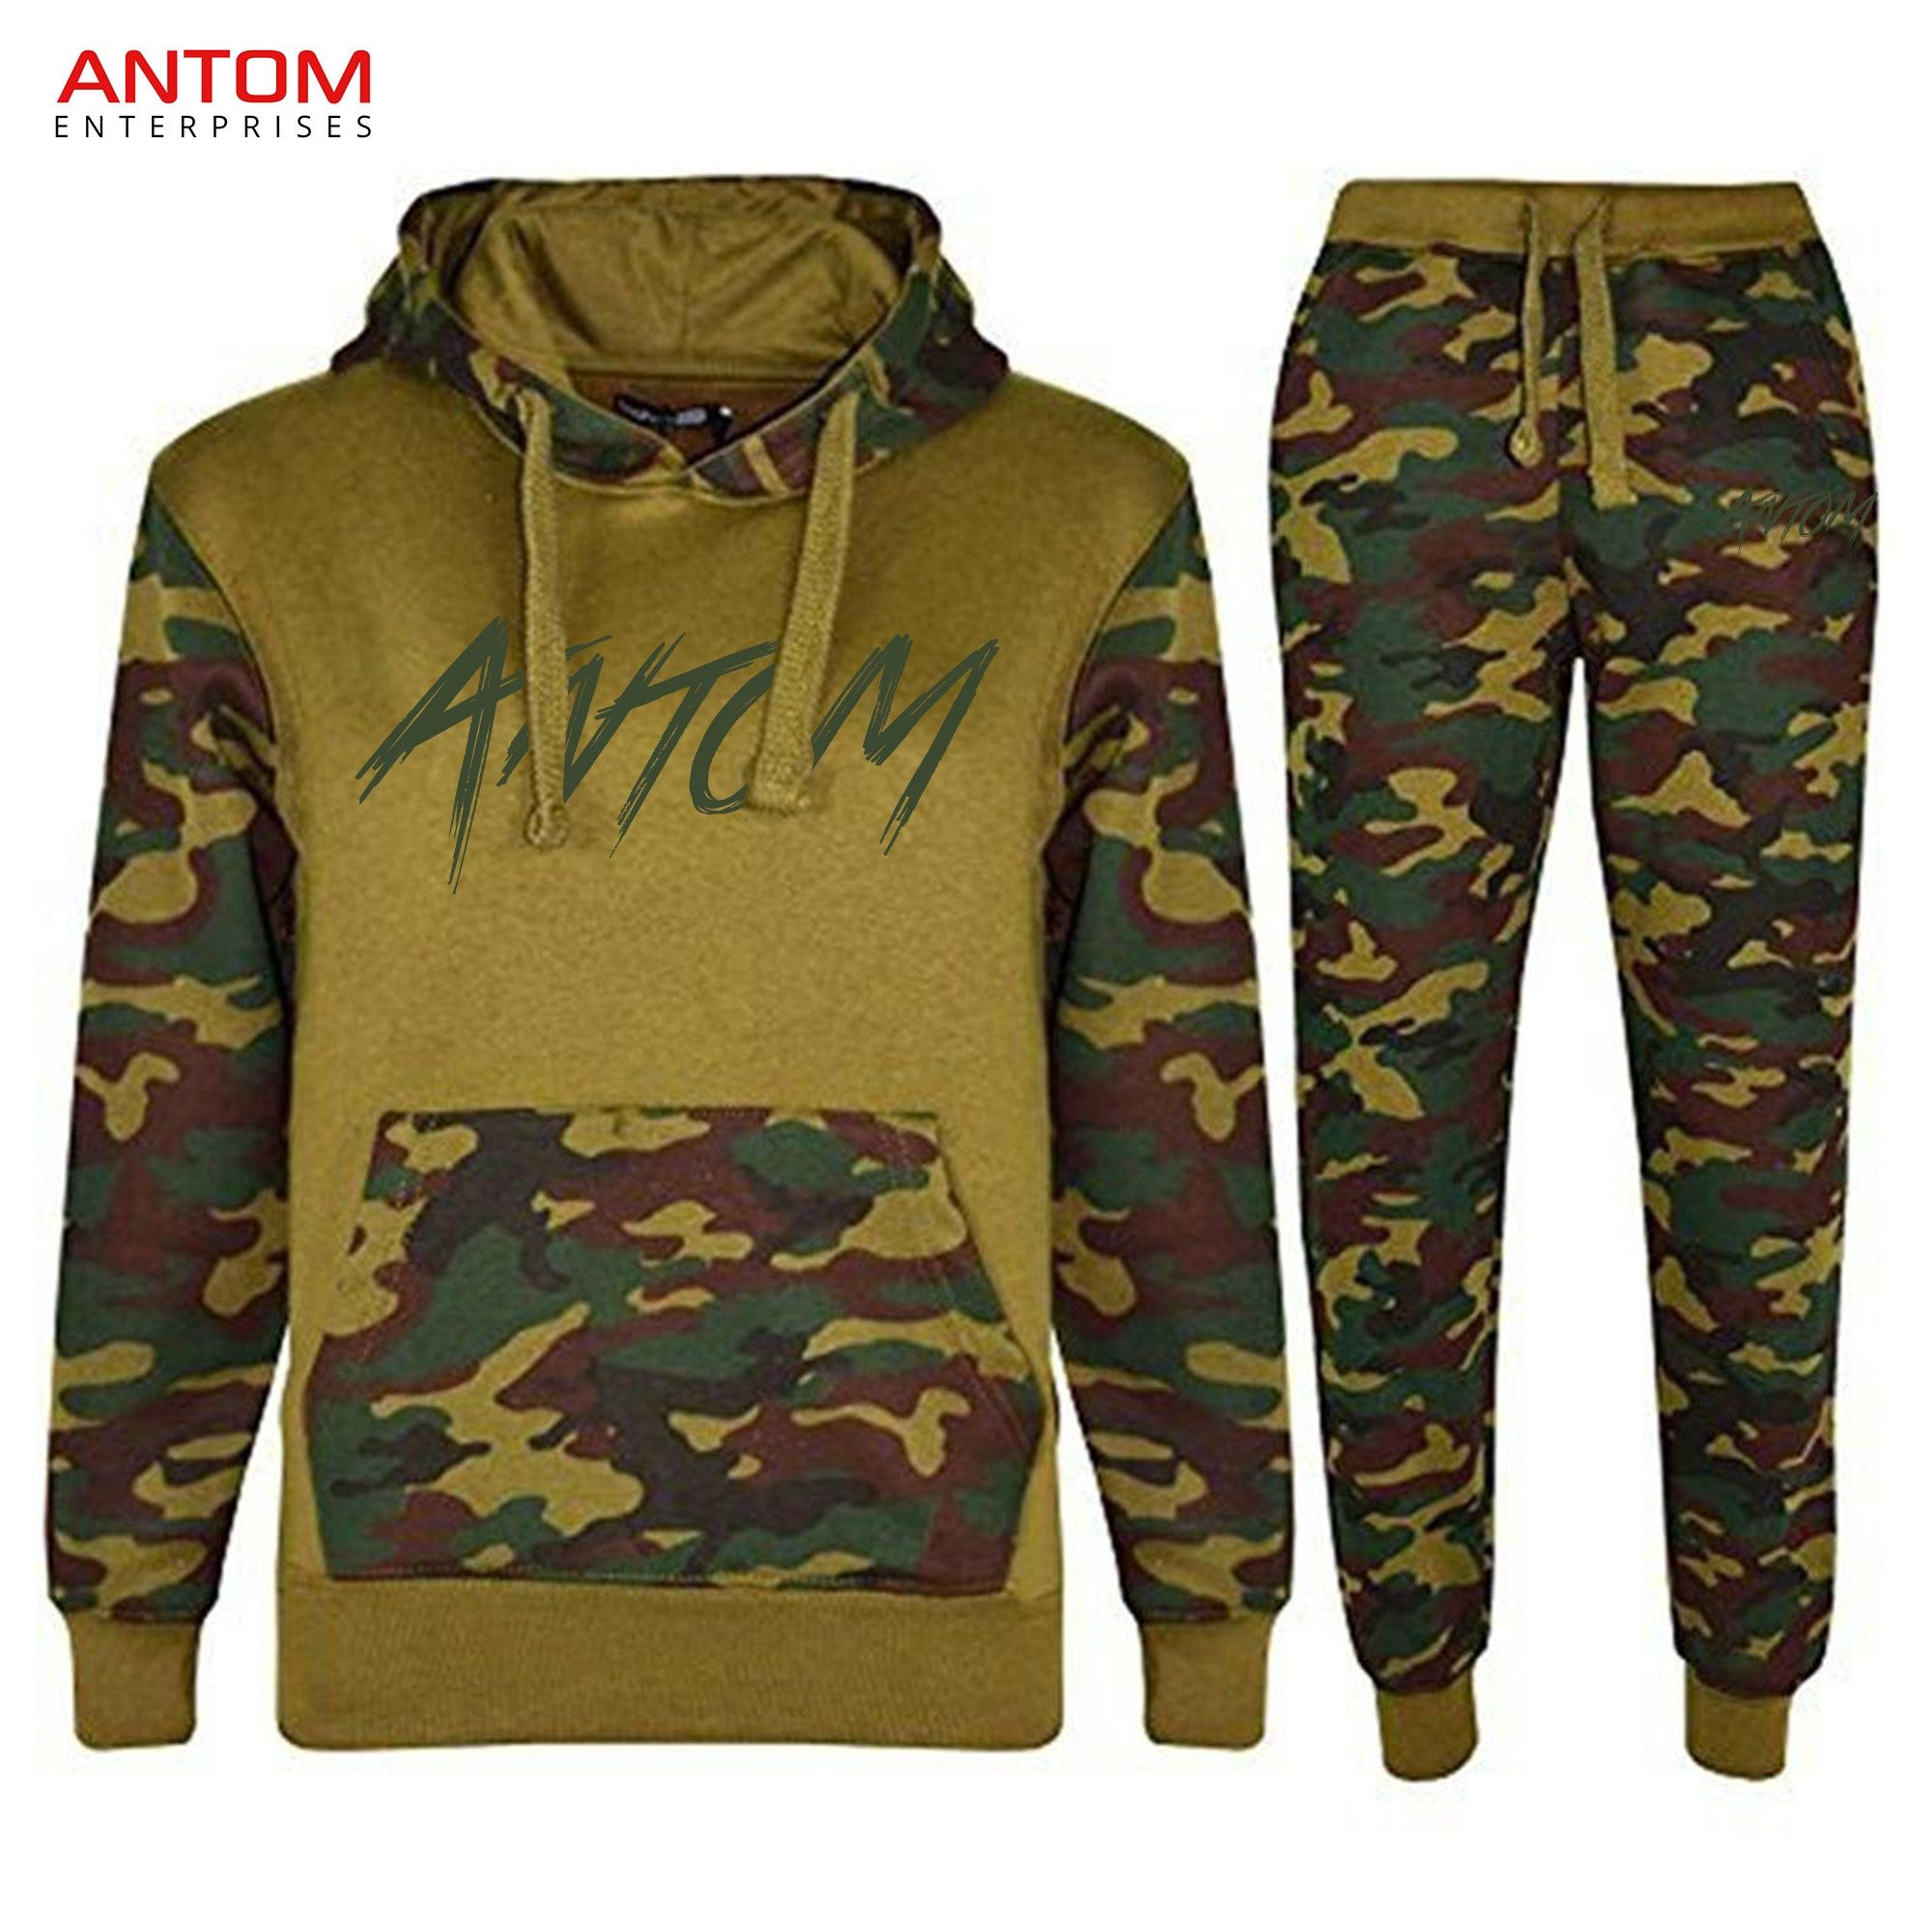 Kids Army Print Pullover Jogging Jogger Two Piece Tracksuit Set